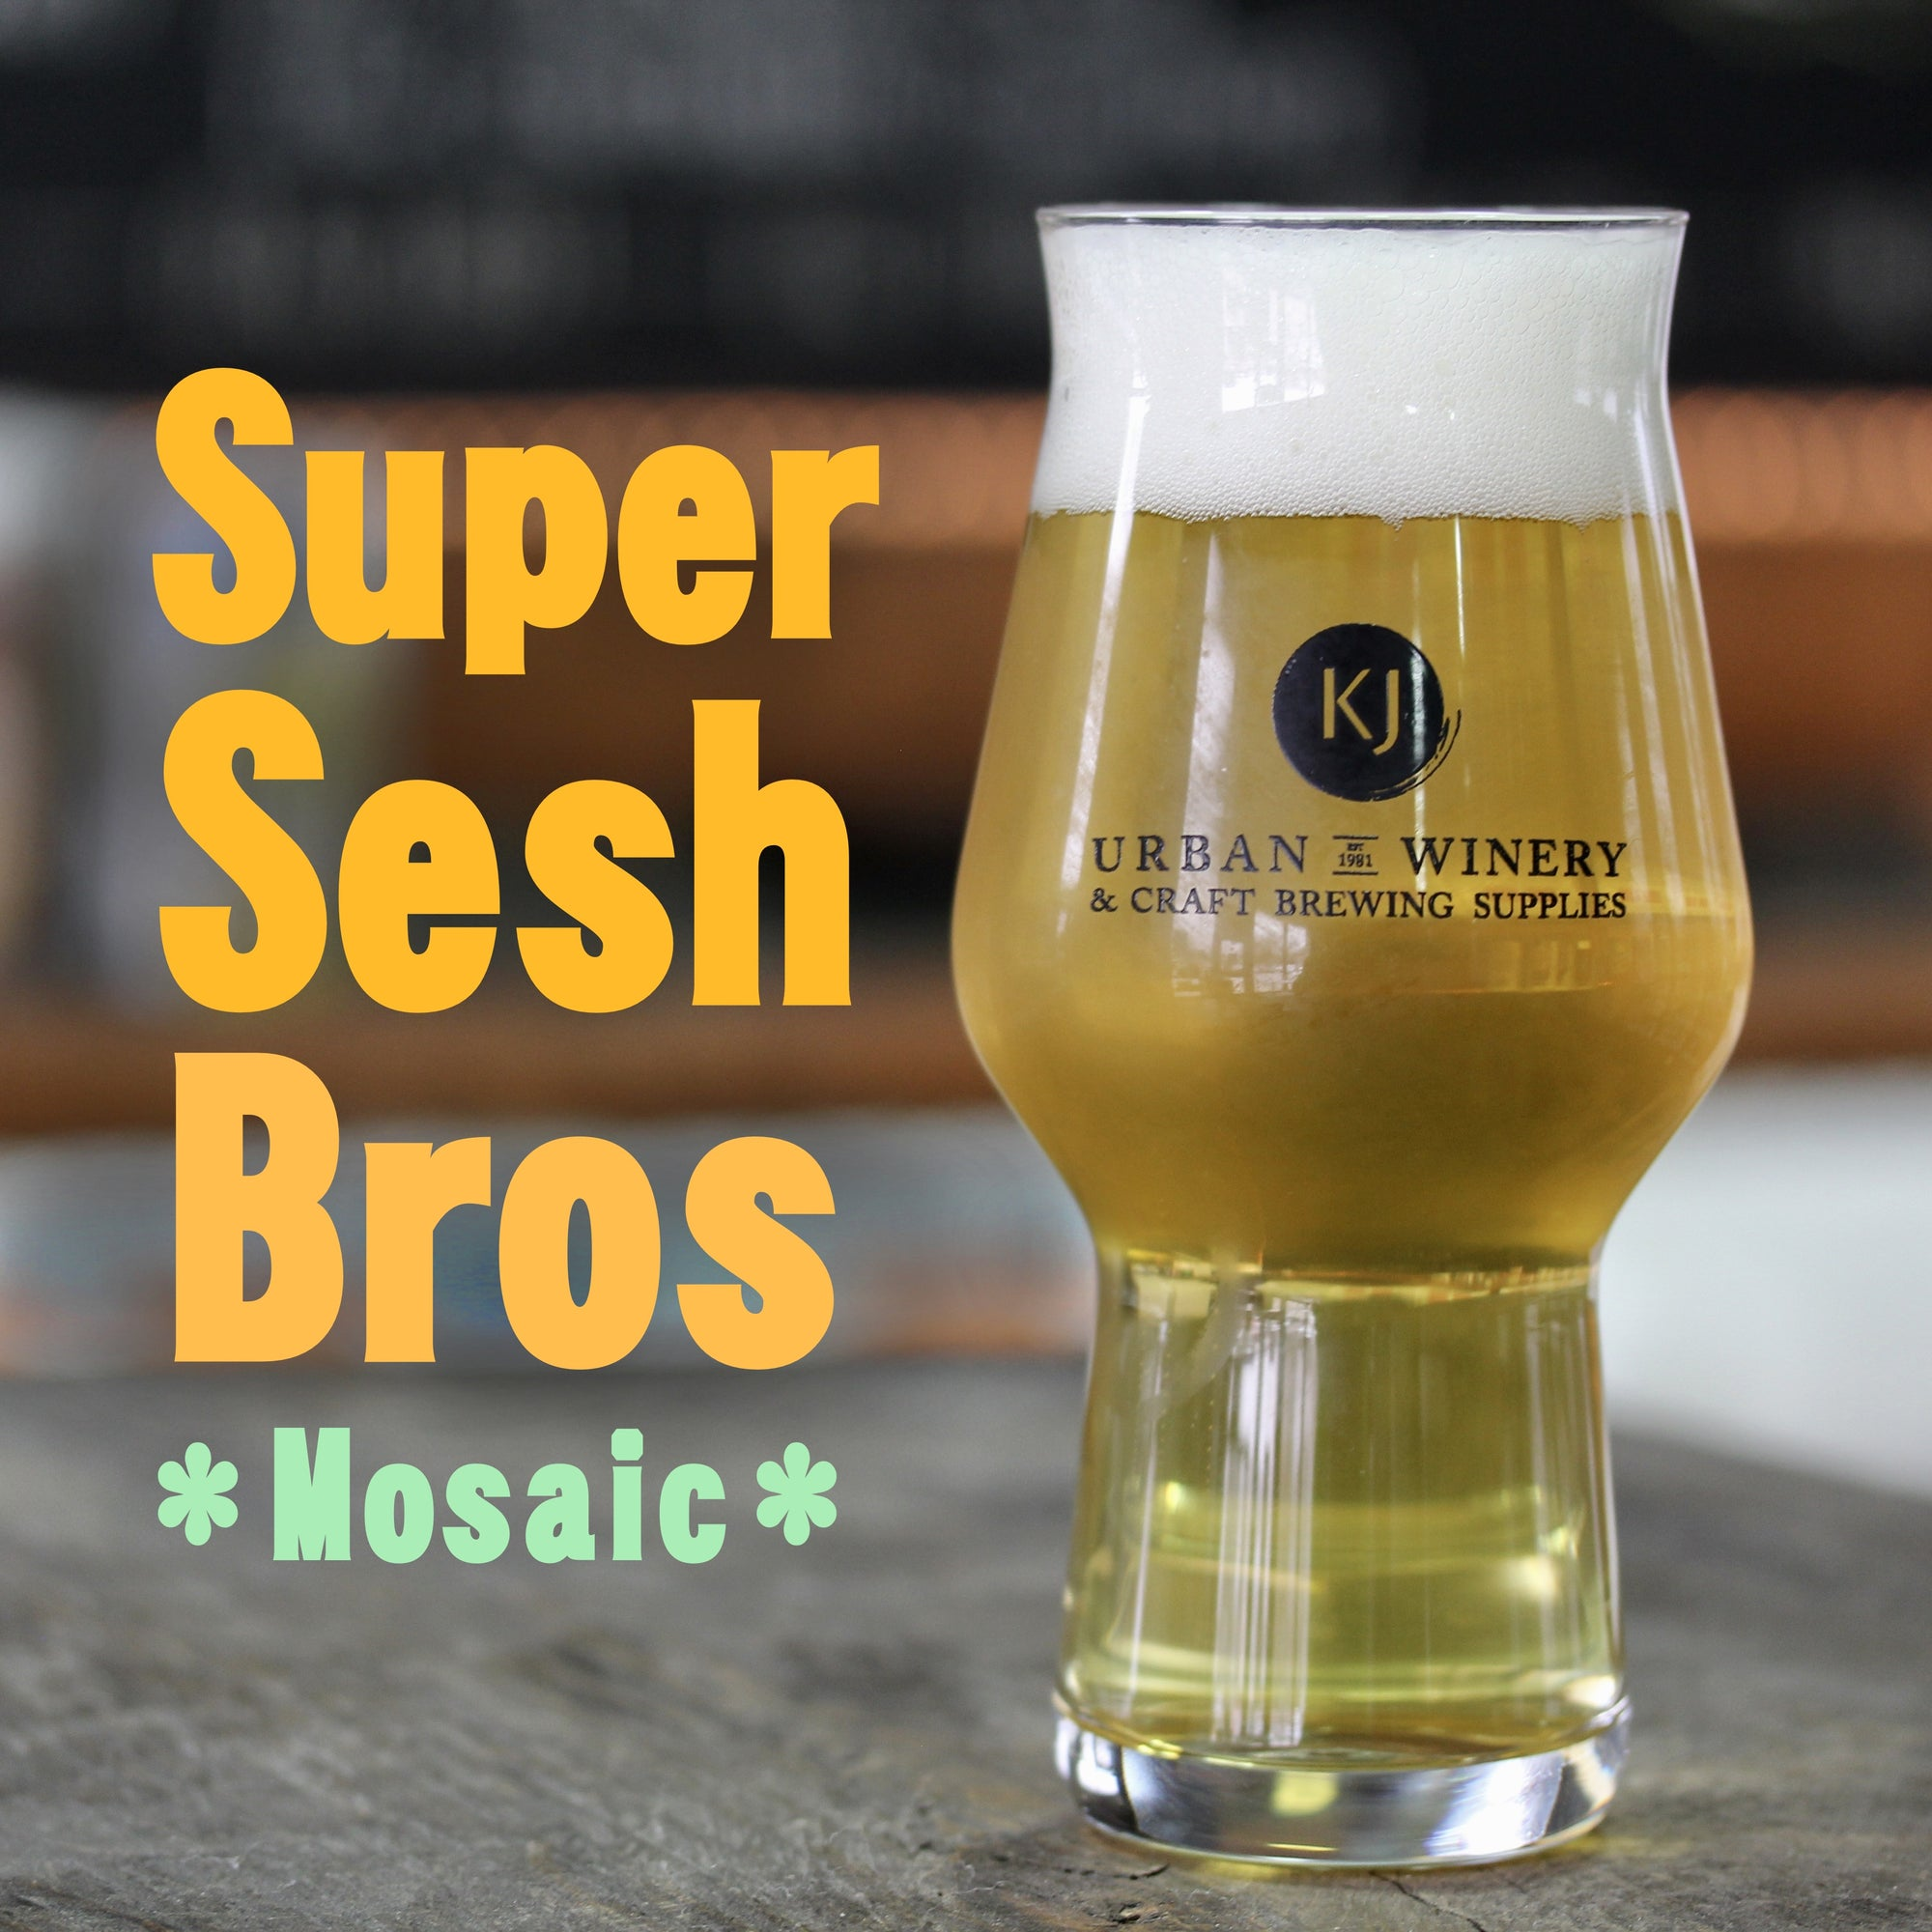 Super Sesh Bros - Mosaic